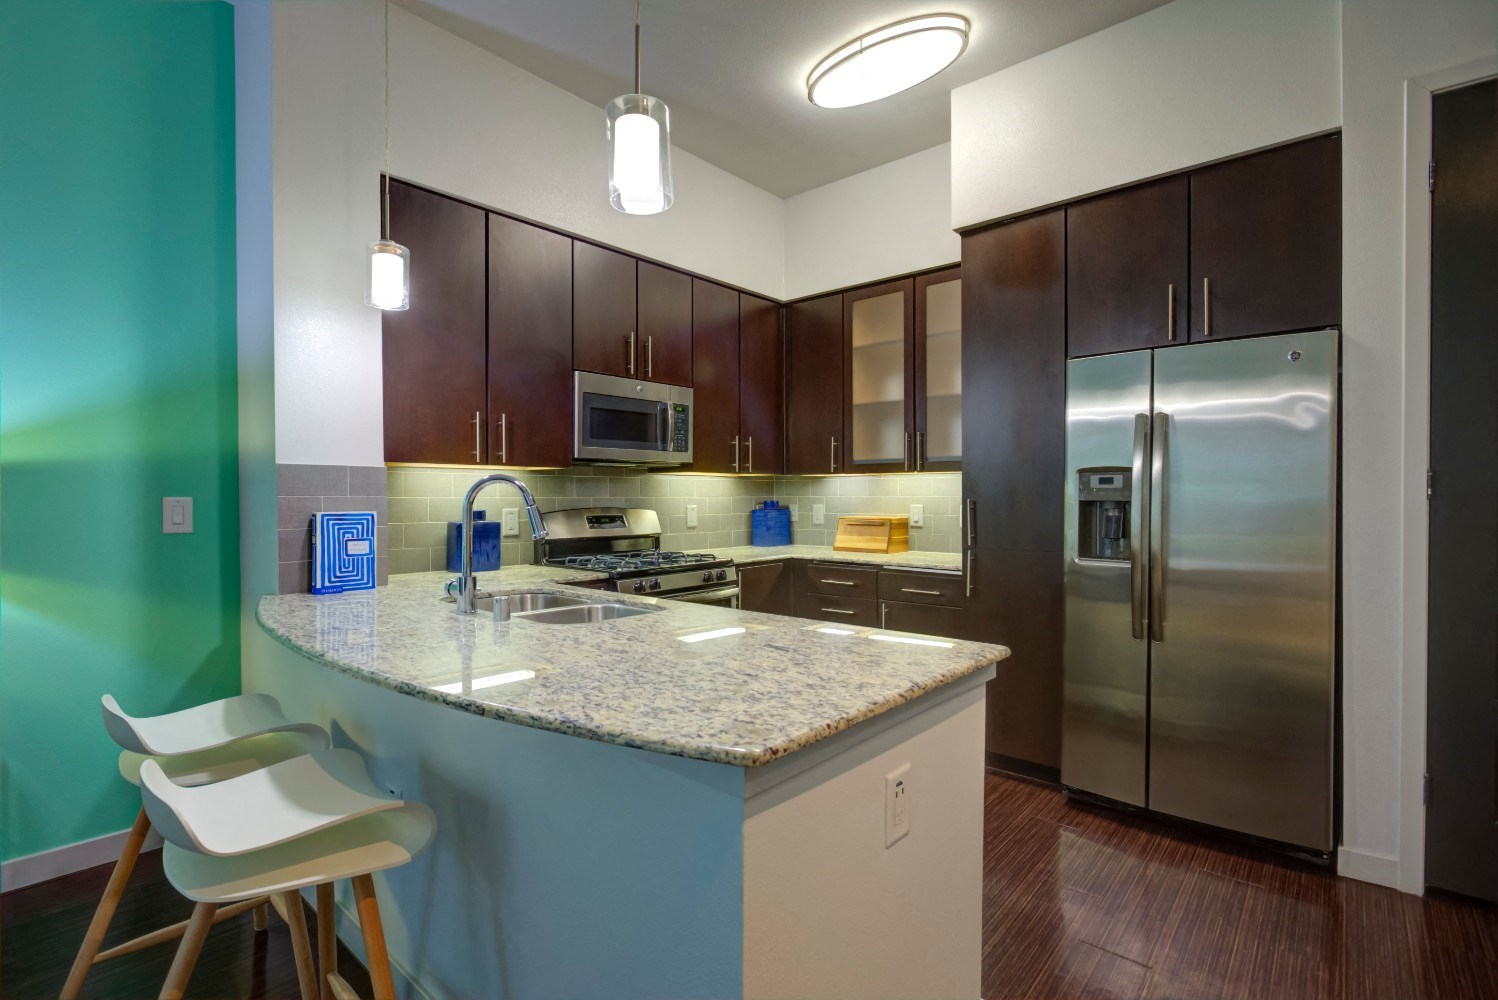 Chic kitchens at Accent apartments, 5550 Grosvenor Blvd, 90066